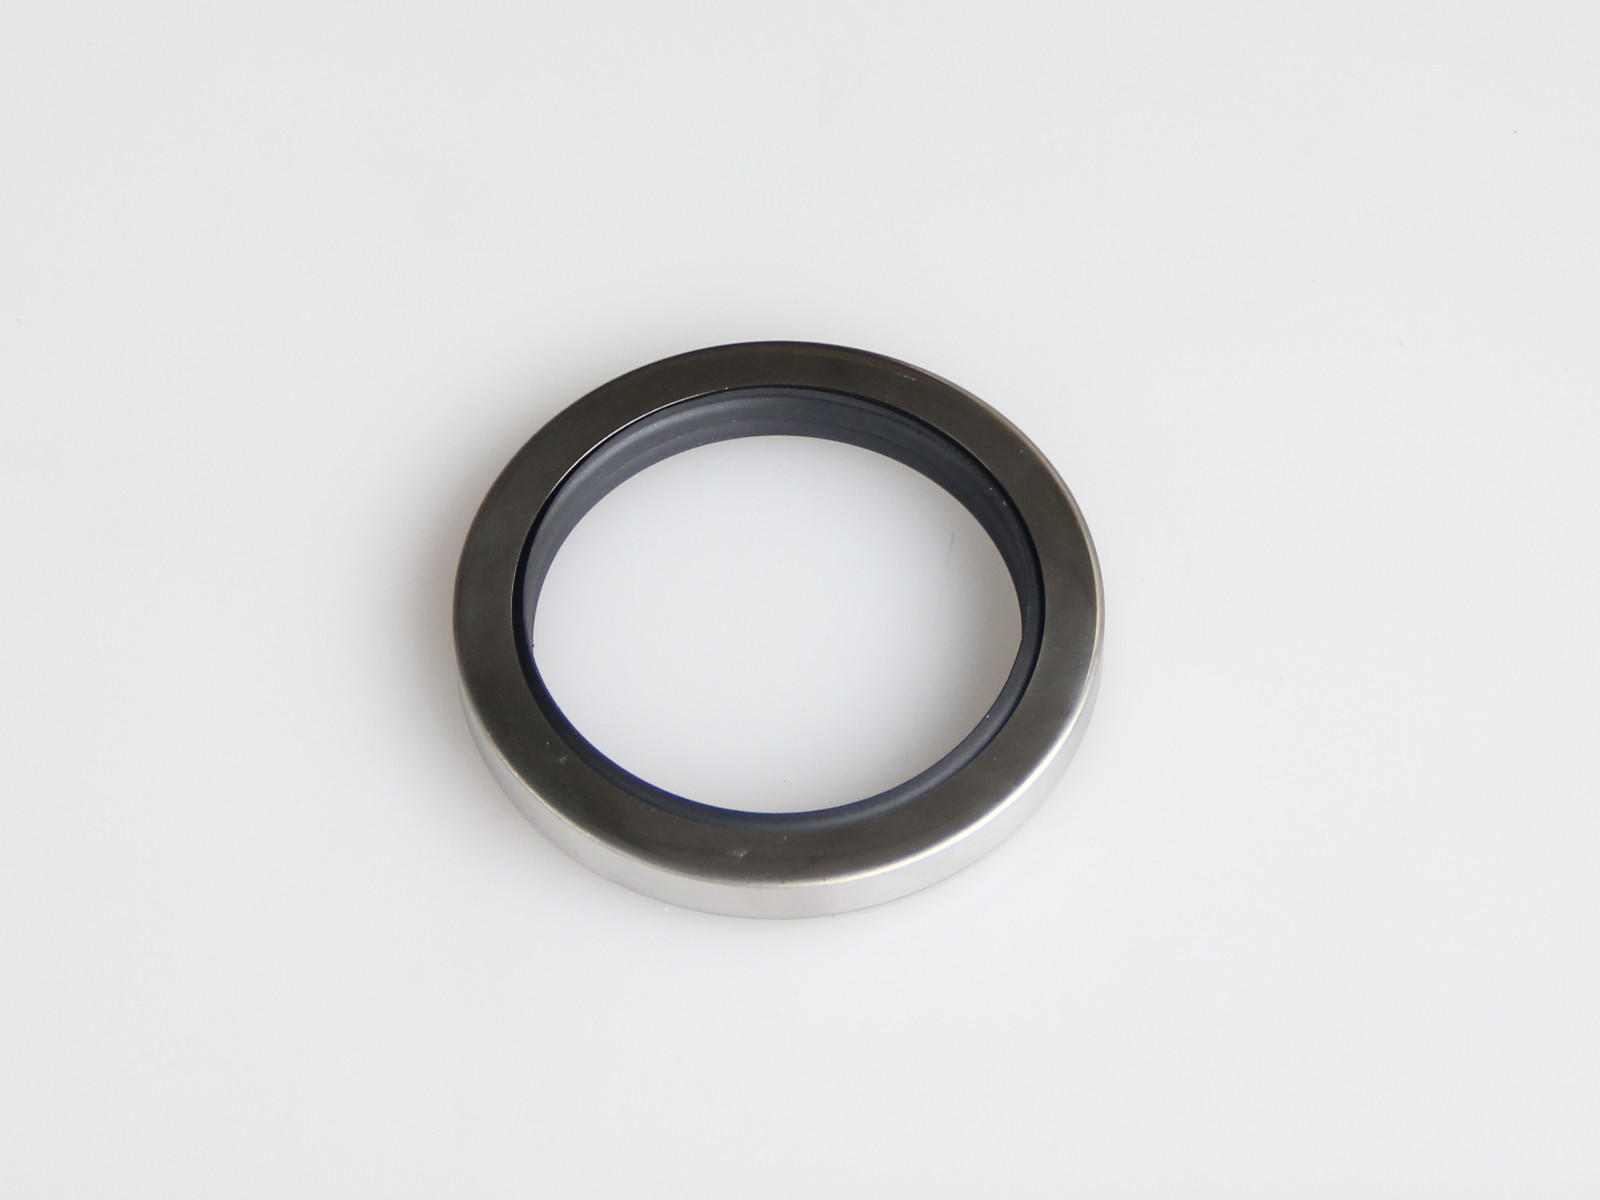 Wholesale single oil seal catalog typedouble DSH Brand